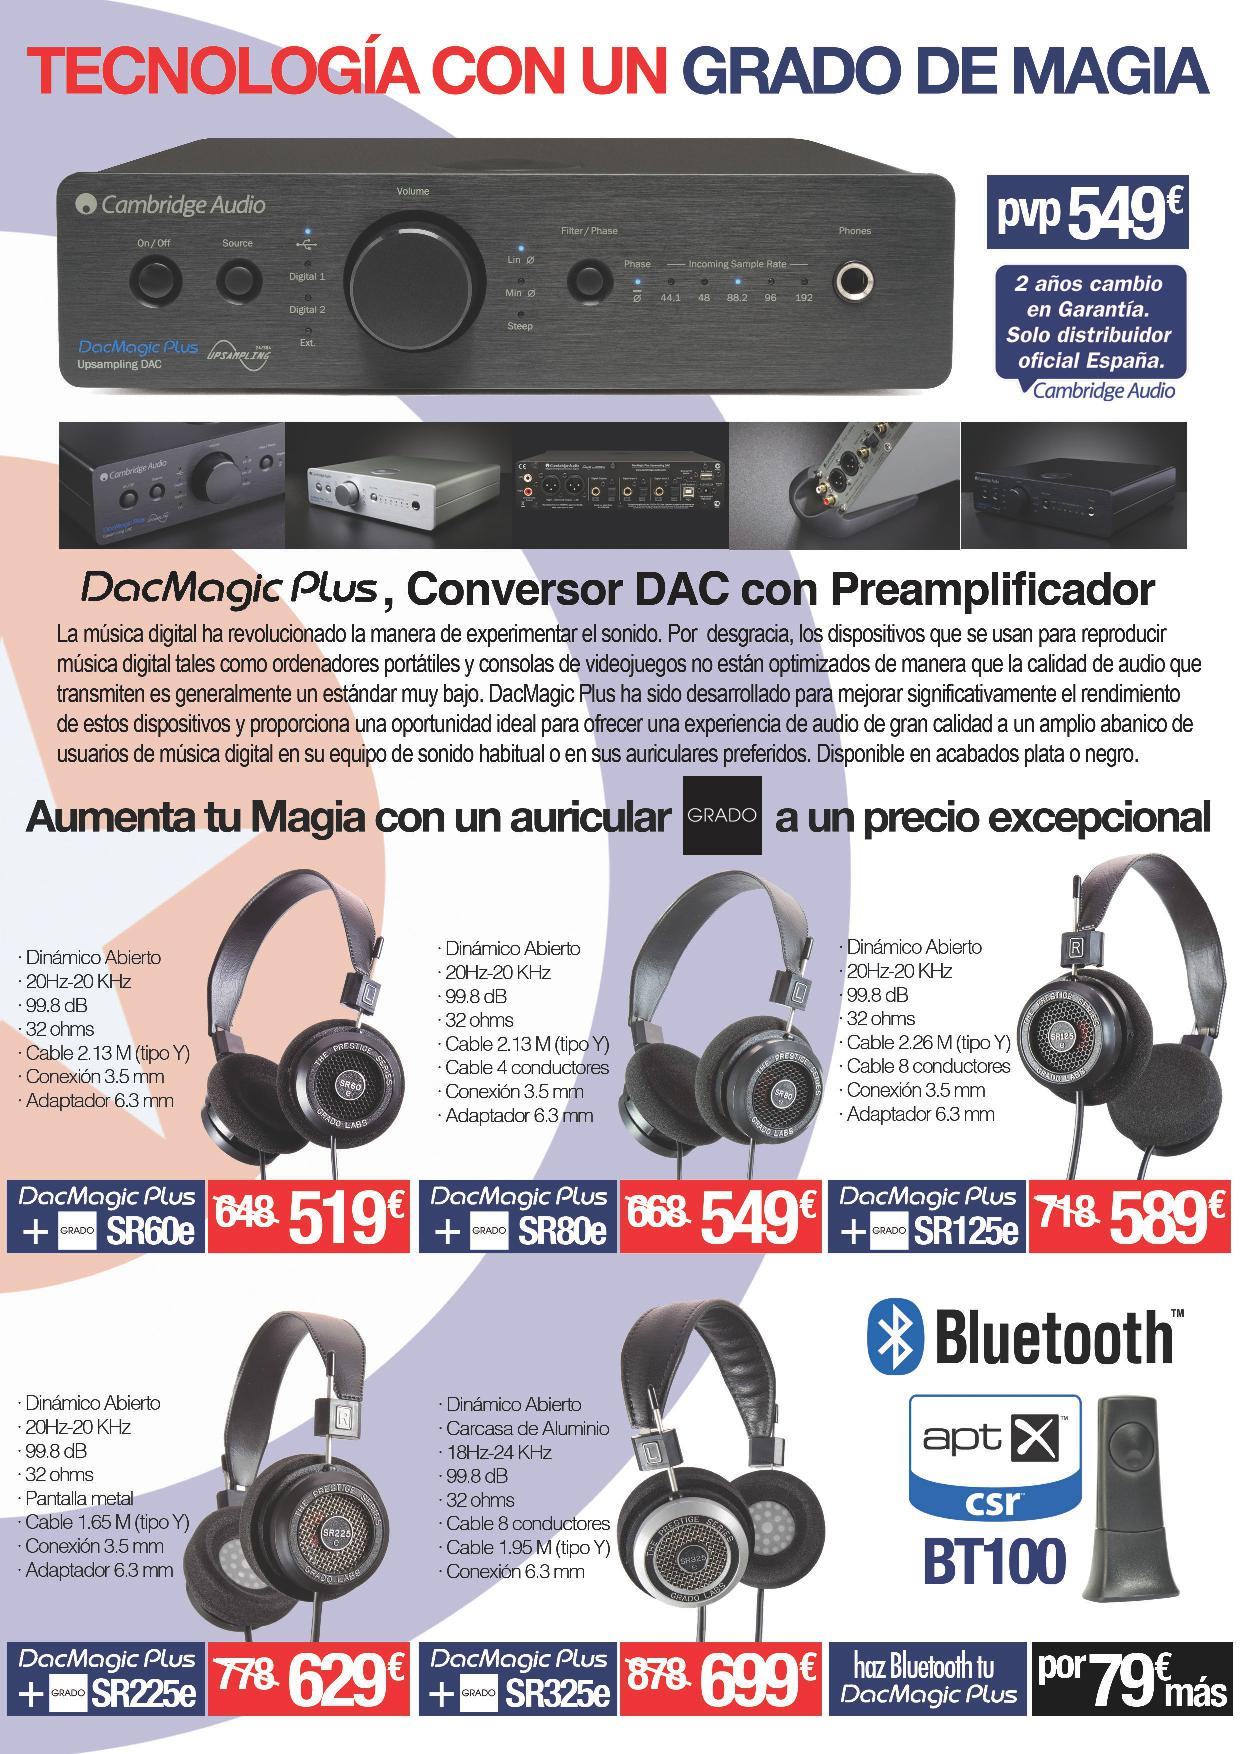 packs dacmagic plus mas grado